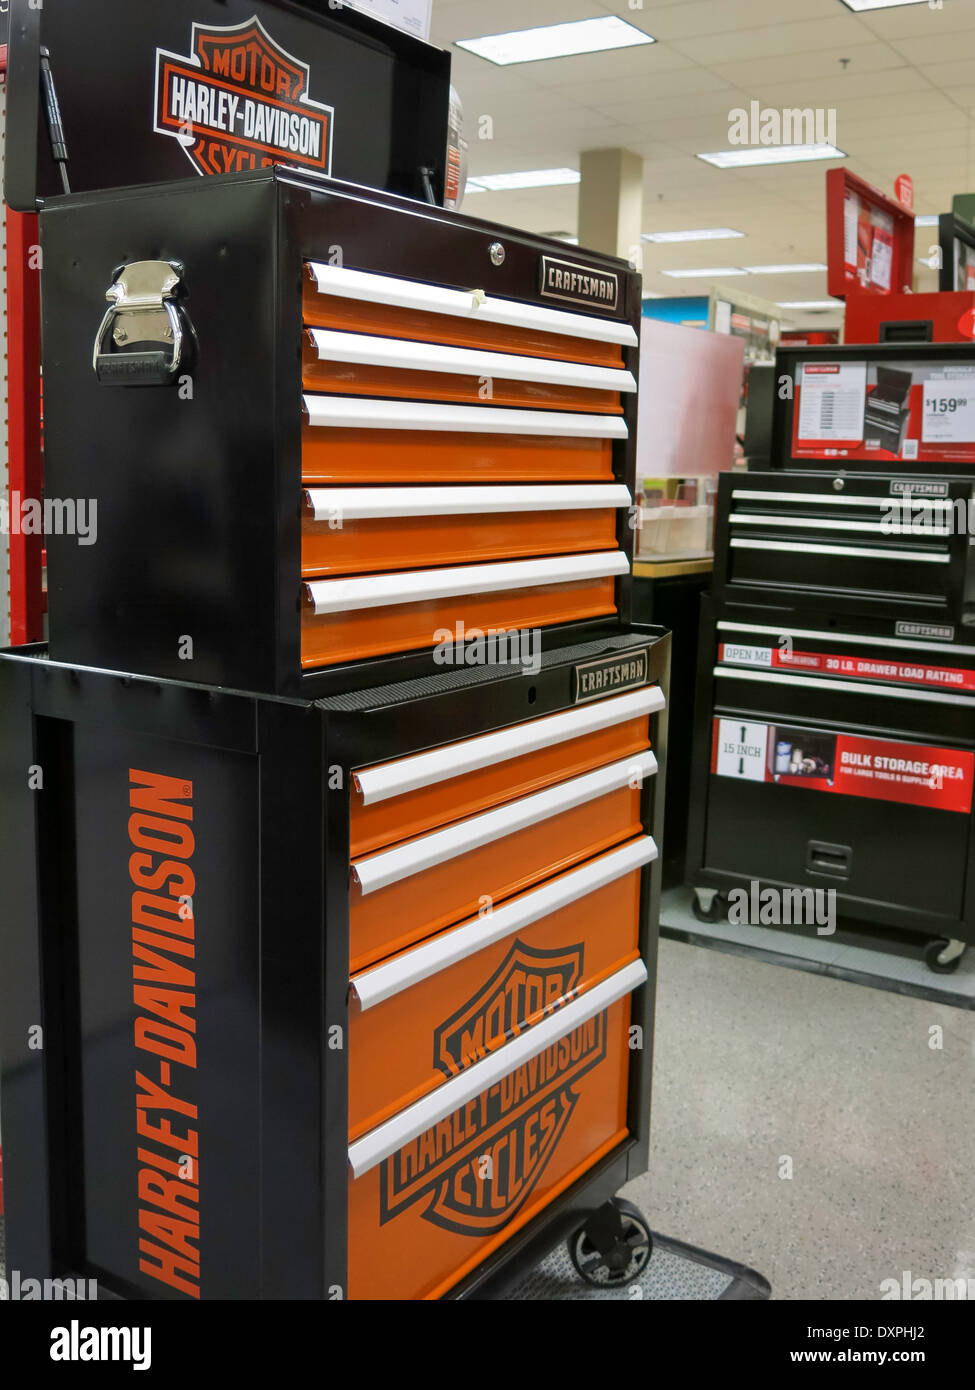 Harley Davidson Specialty Branded Tool Chest Sears Store Tool Stock